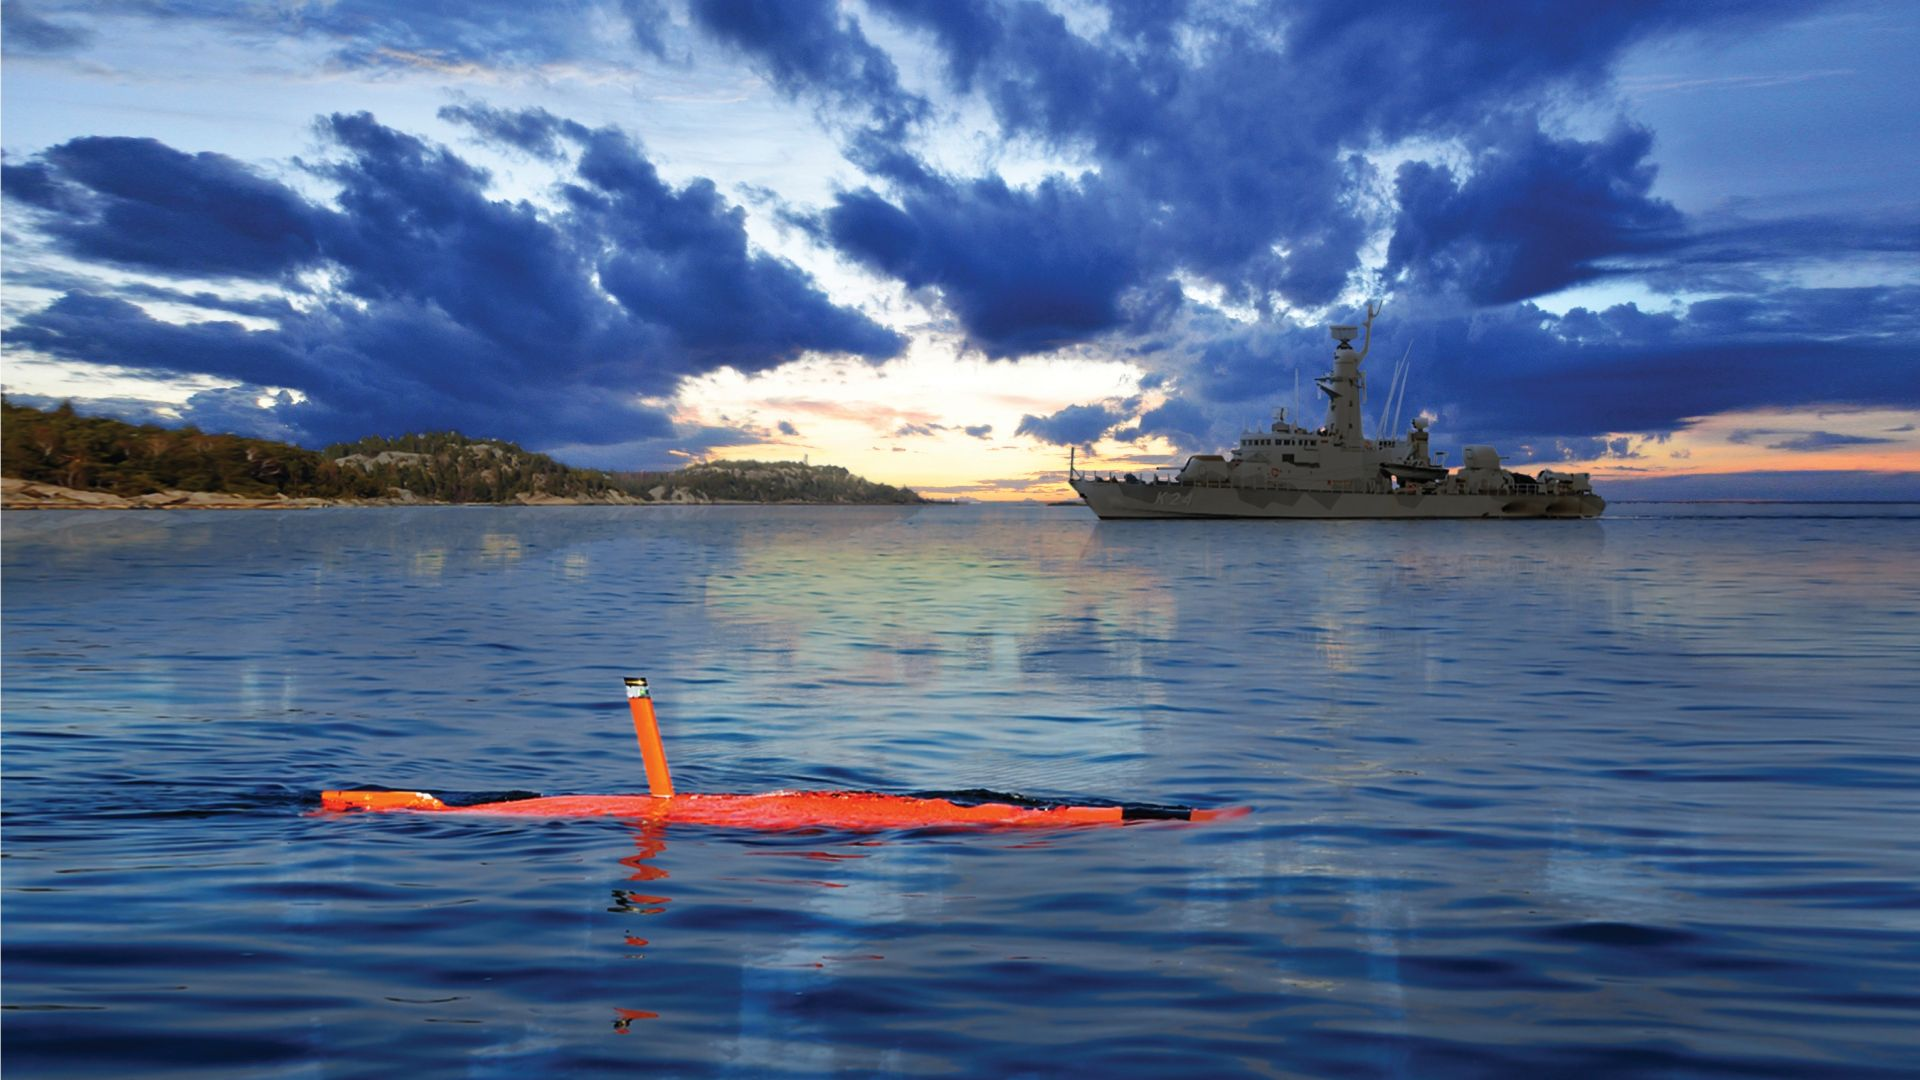 Saab AUV62-AT, дрон, подводная лодка, Unmanned Warrior 2016, Армия Швеции, ВМС Швеции, Saab AUV62-AT, drone, submarine, Unmanned Warrior 2016, Swedish Navy, Swedish Army (horizontal)